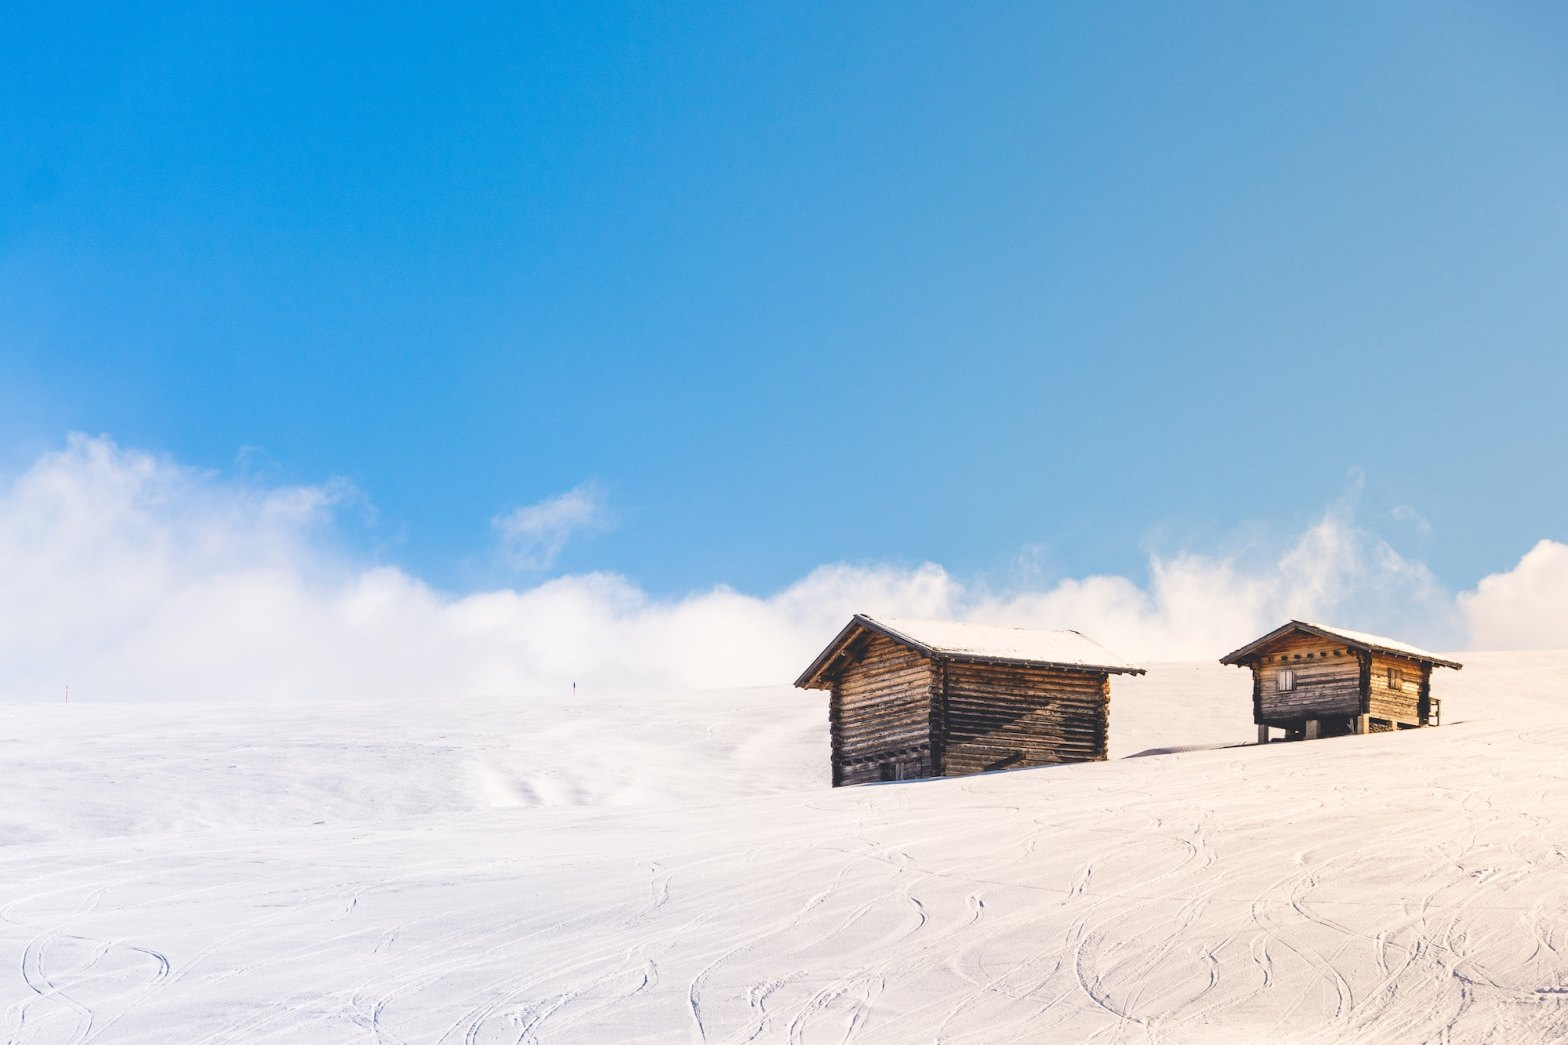 Cabins on a snowy hill